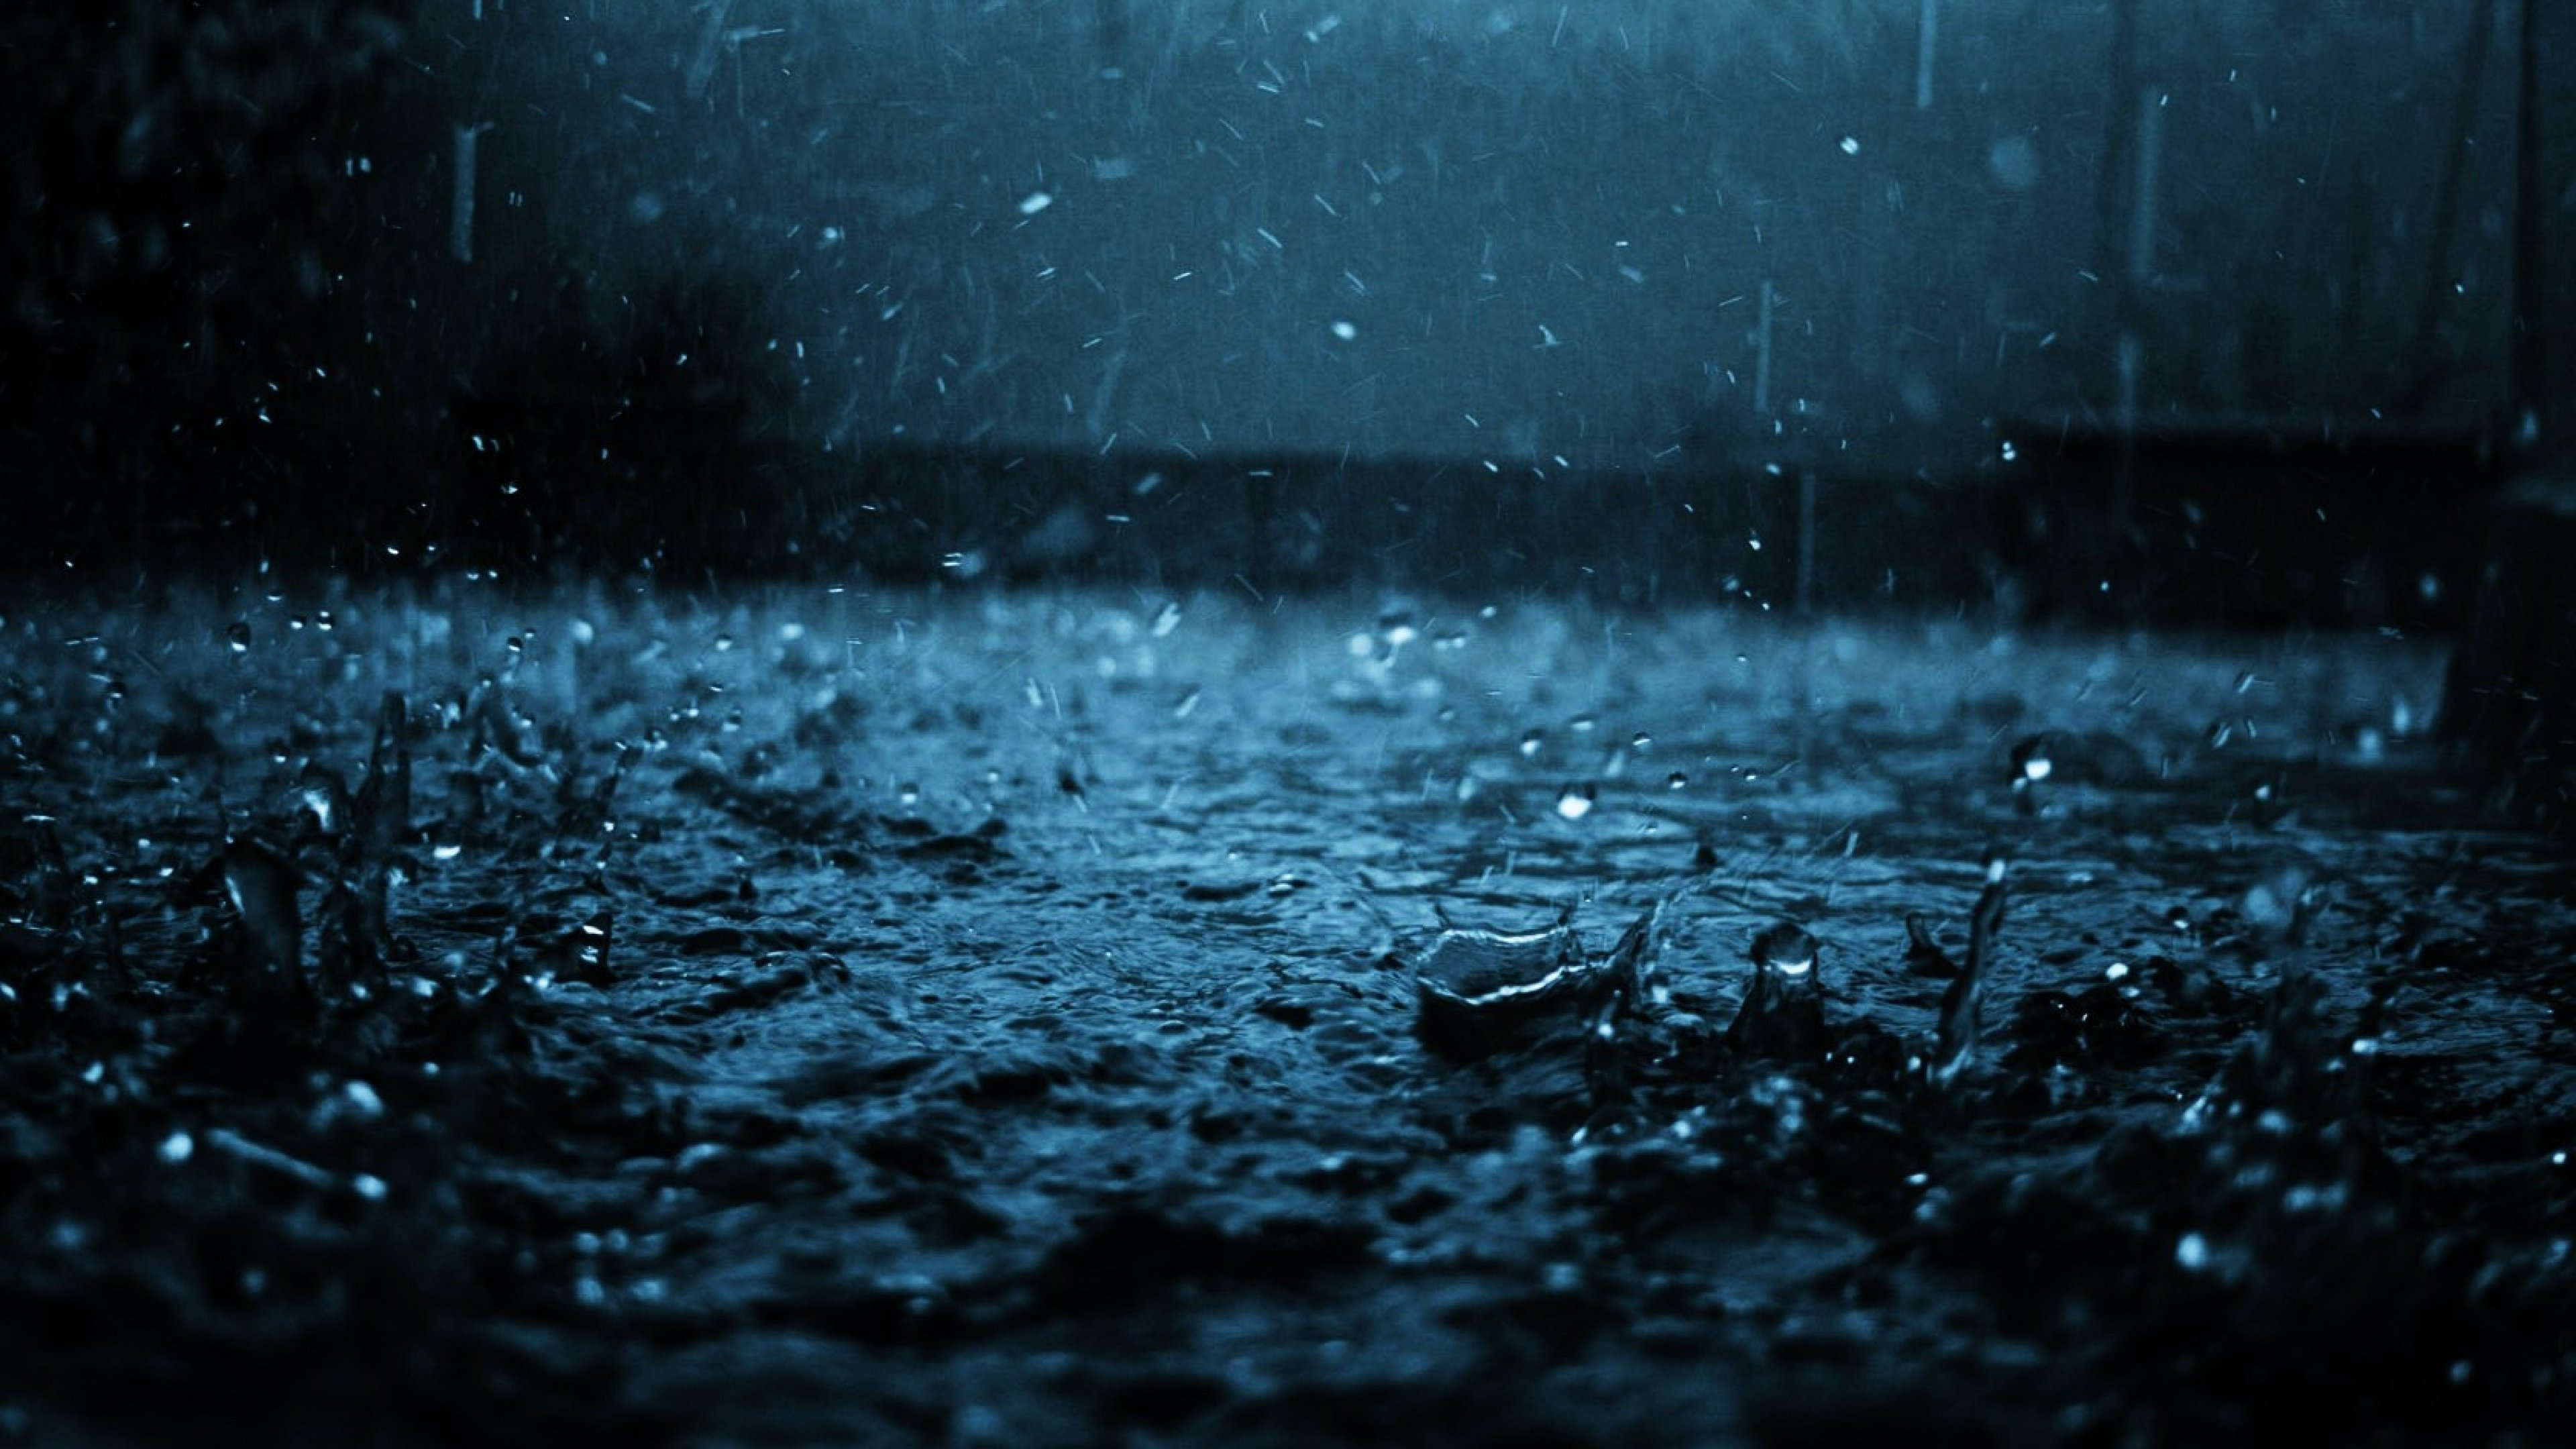 4k rain wallpaper wallpapersafari for Wallpaper home 4k